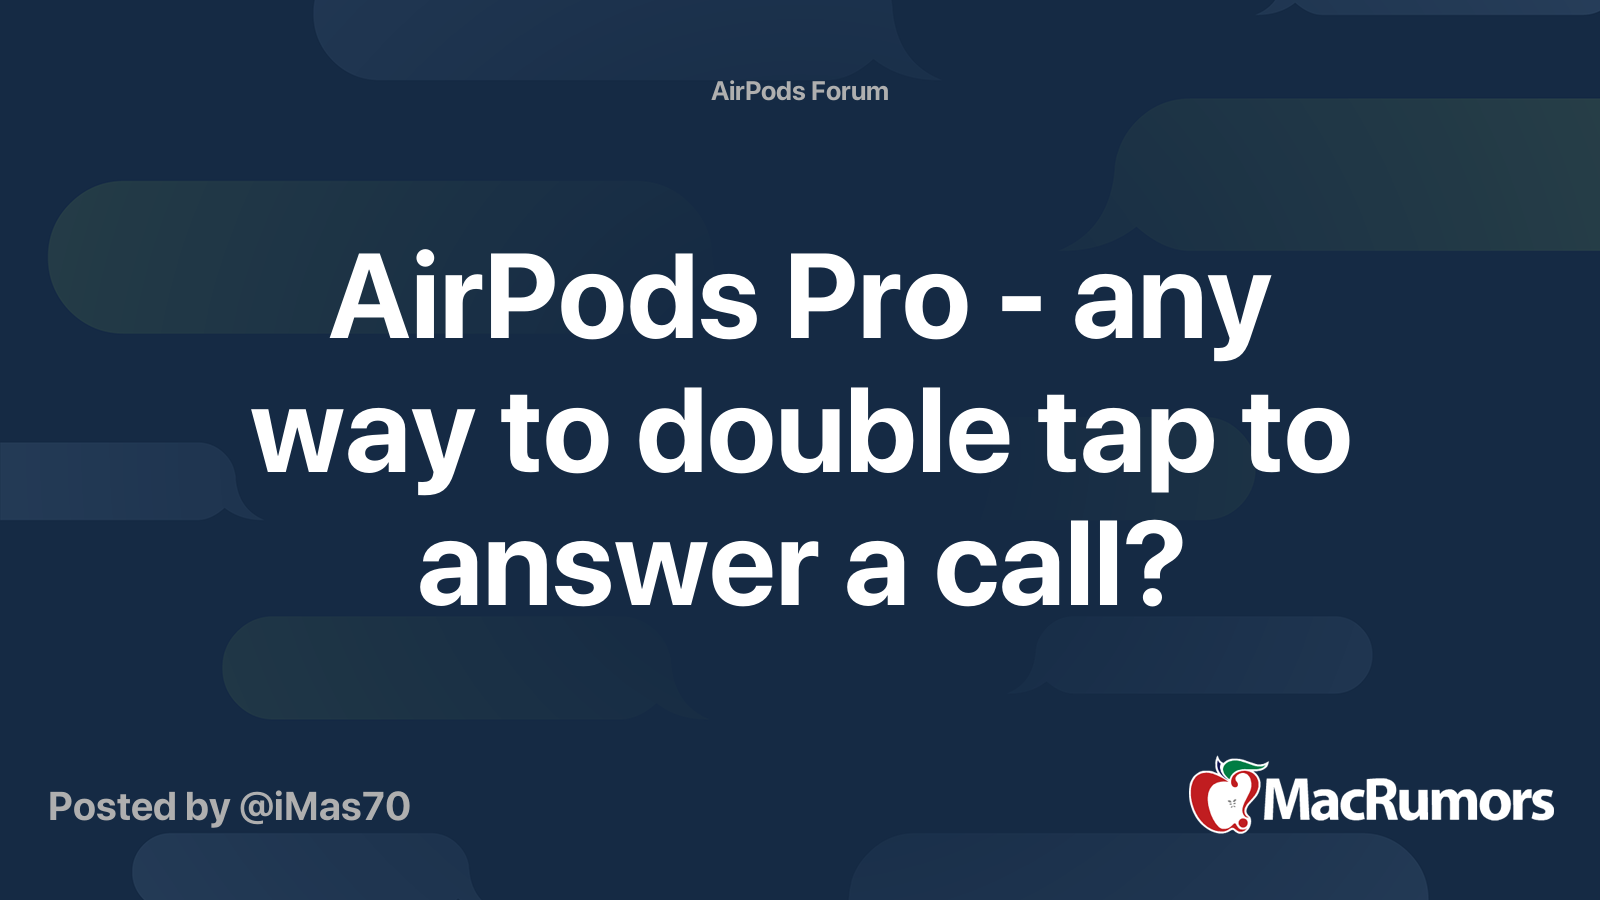 AirPods Pro - any way to double tap to answer a call? | MacRumors Forums